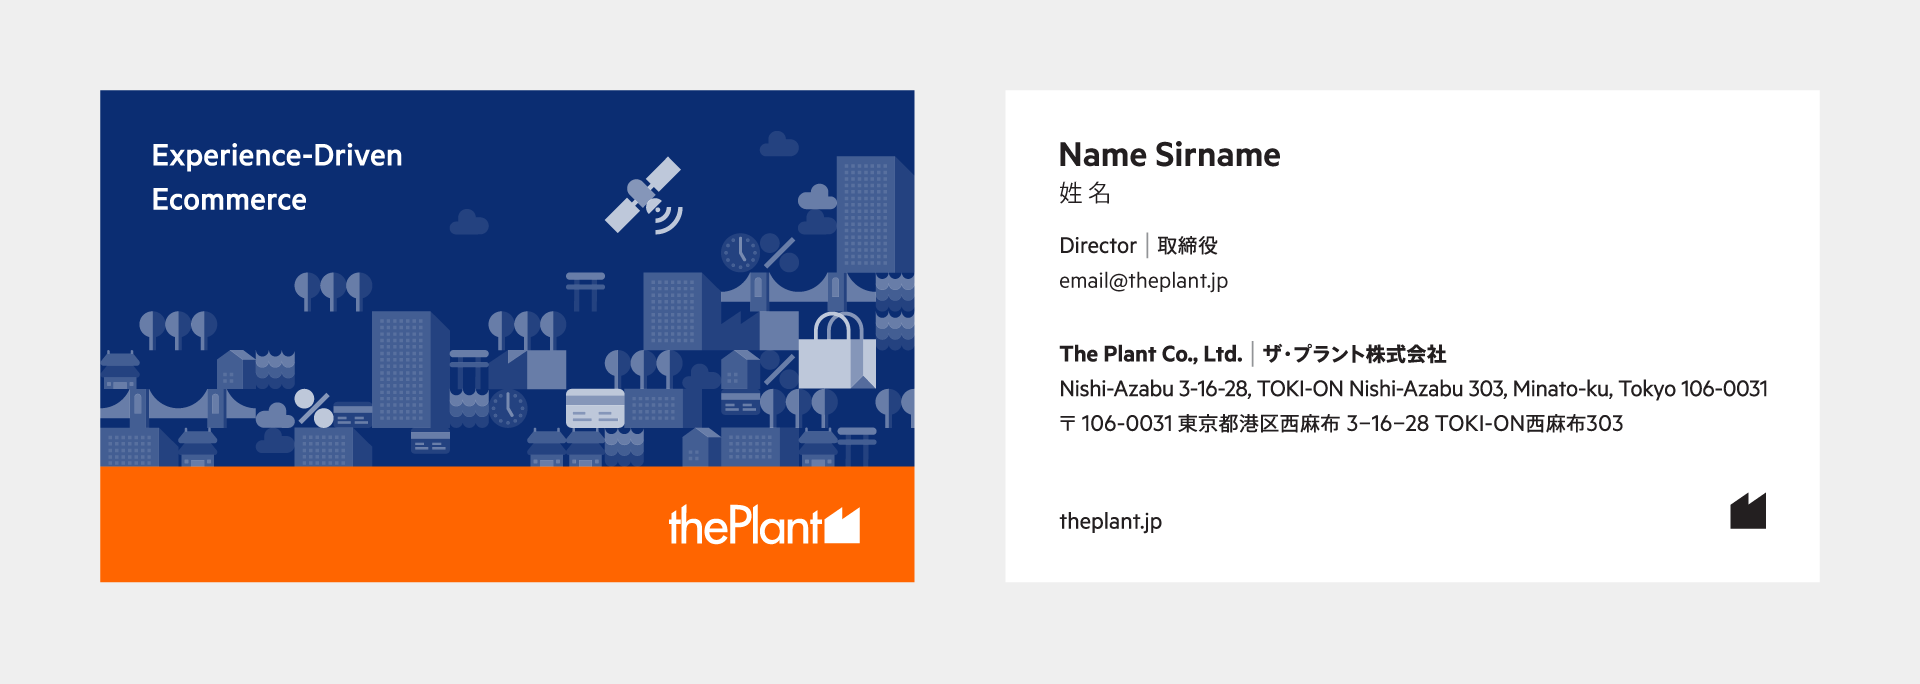 The Plant - Business Card Collateral Design